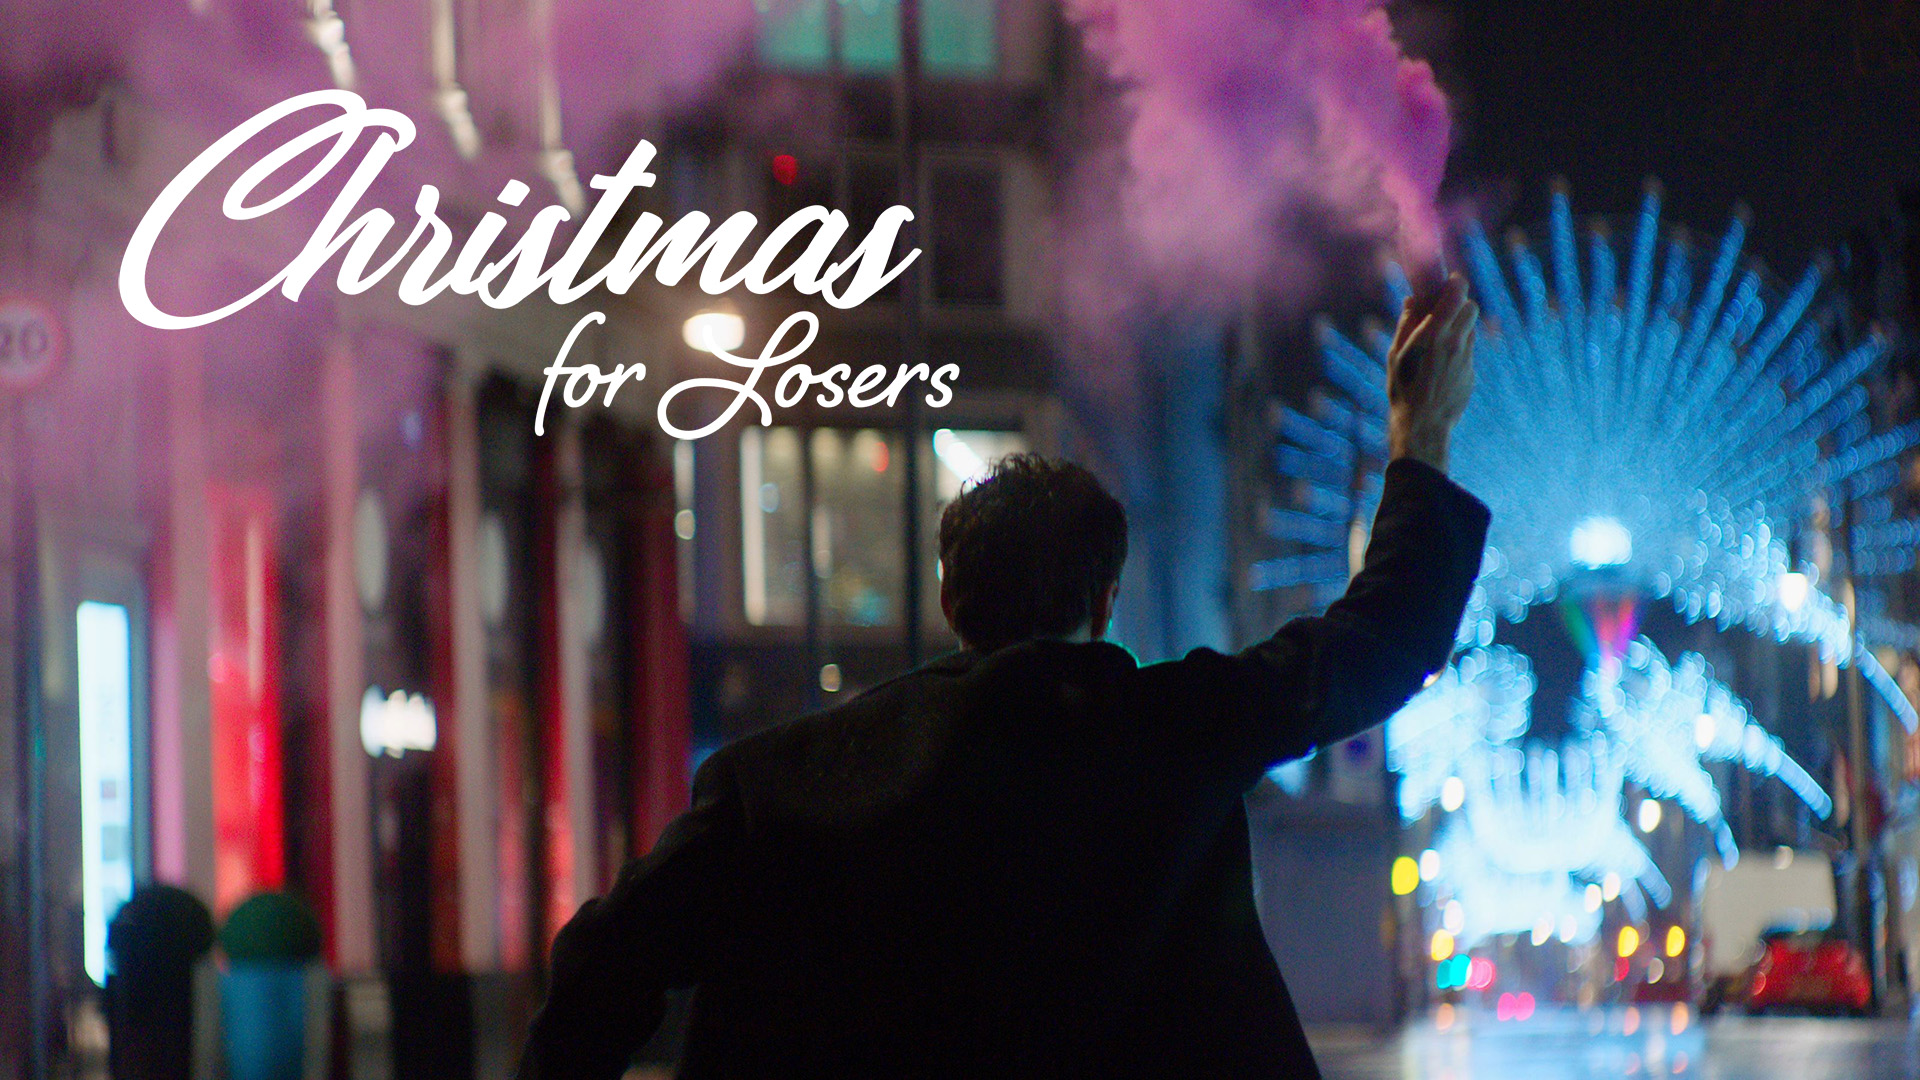 Christmas-for-losers-music-video-01.jpg